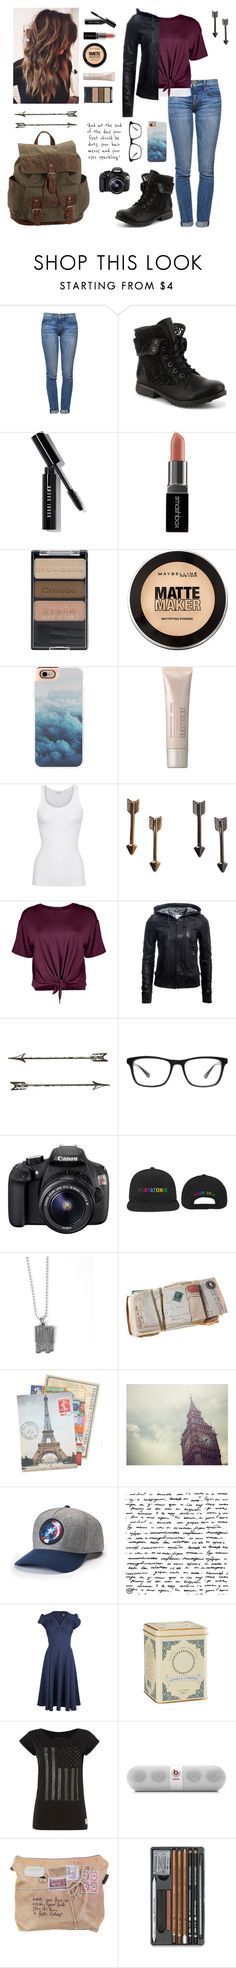 """""""1st place goes to. ."""" by isabel-harsh ❤ liked on Polyvore featuring Current/Elliott, Bobbi Brown Cosmetics, Smashbox, Wet n Wild, Maybelline, Casetify, Laura Mercier, American Vintage, Monki and Boohoo"""